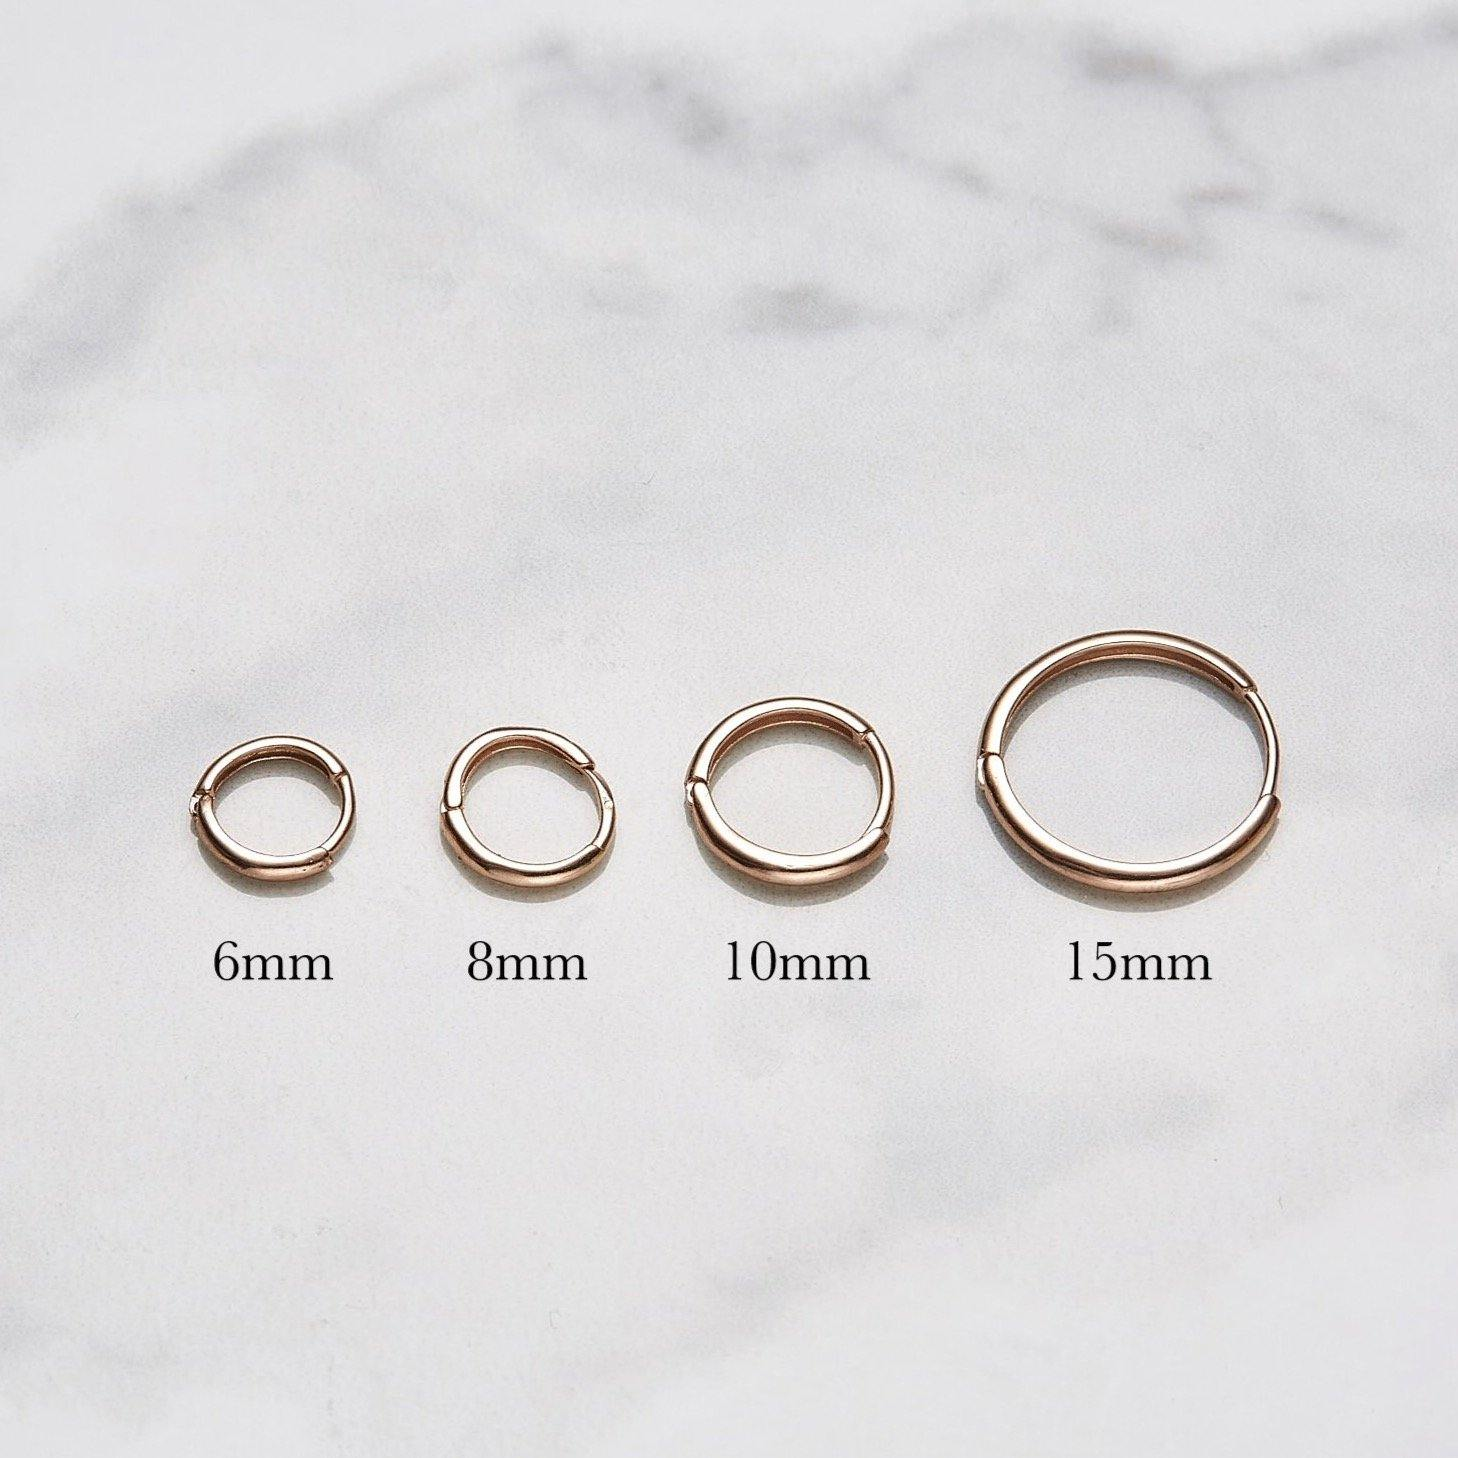 10mm One-touch earrings